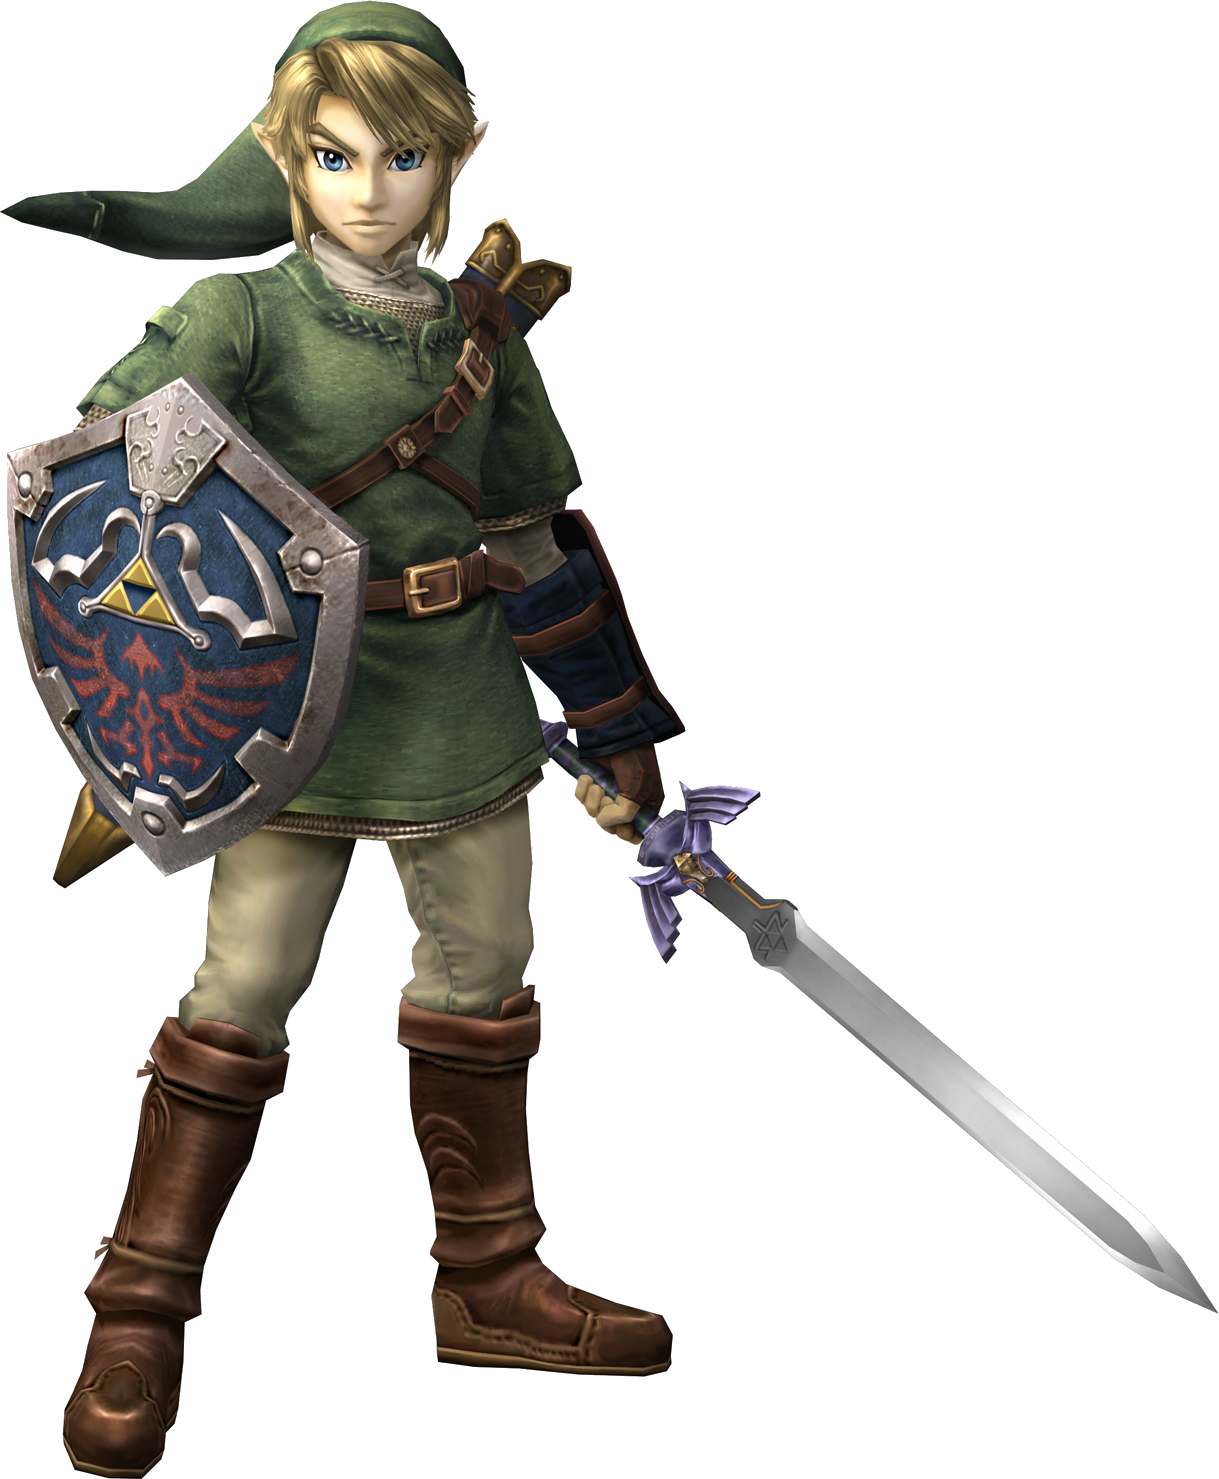 Link_(Super_Smash_Bros._Brawl).png